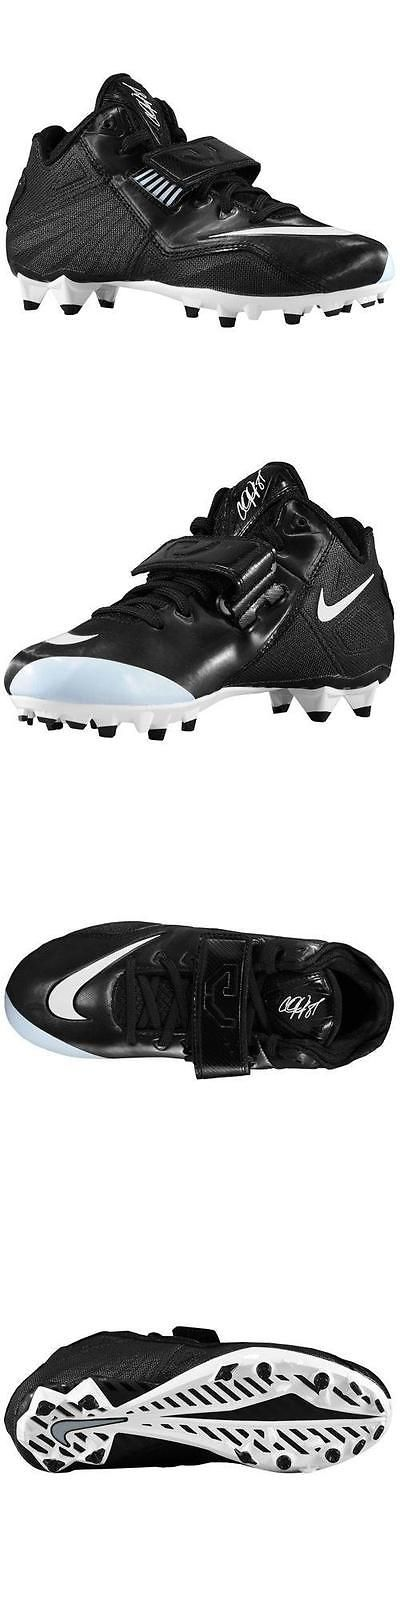 Youth 159118: New Nike Cj Strike 2 Td Calvin Johnson Youth Boys Football Cleats - Black/White -> BUY IT NOW ONLY: $47.49 on eBay!